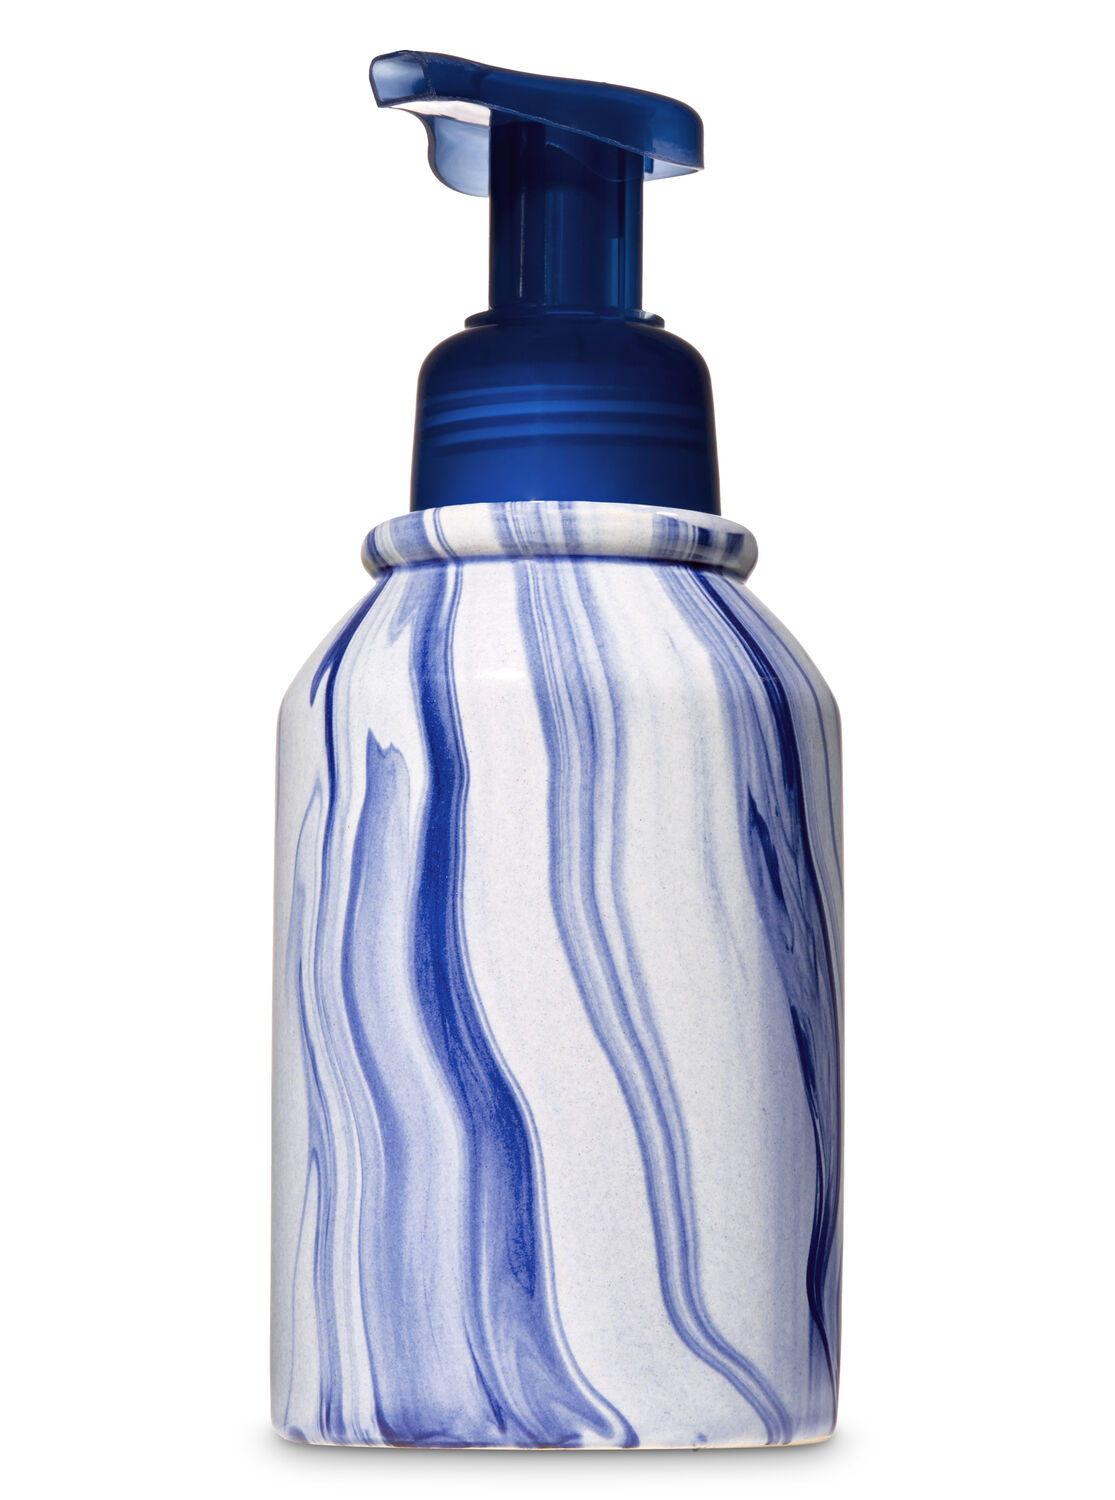 Unique Hand Soap Dispenser Blue Swirl Soap Dispenser